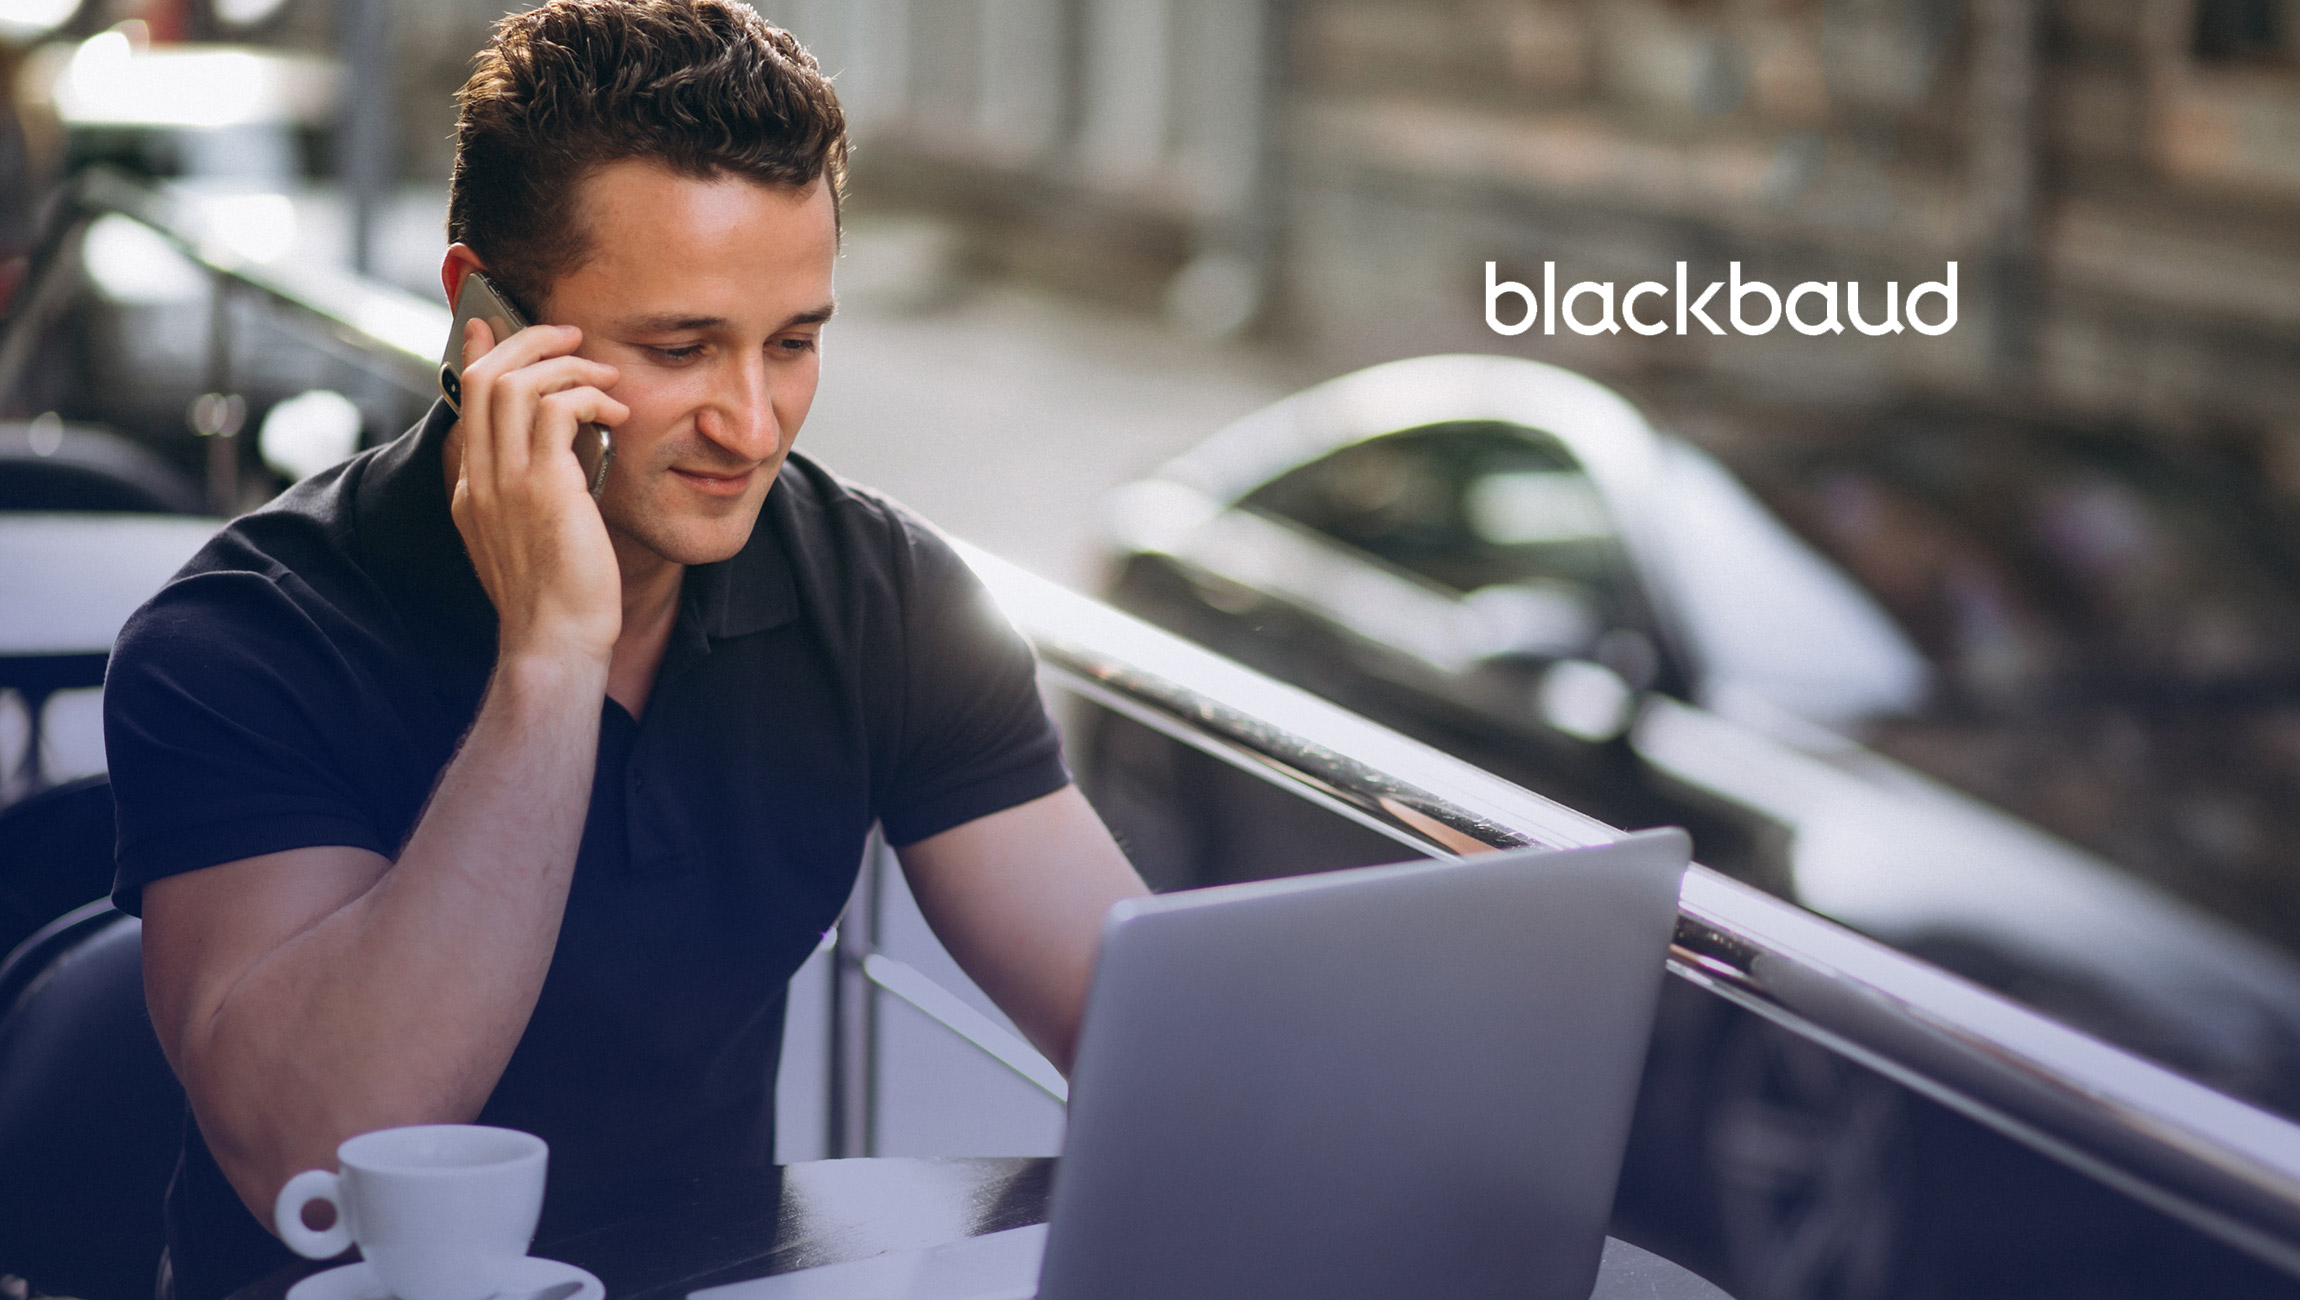 Blackbaud Announces Expanded Relationship with The Salvation Army Australia